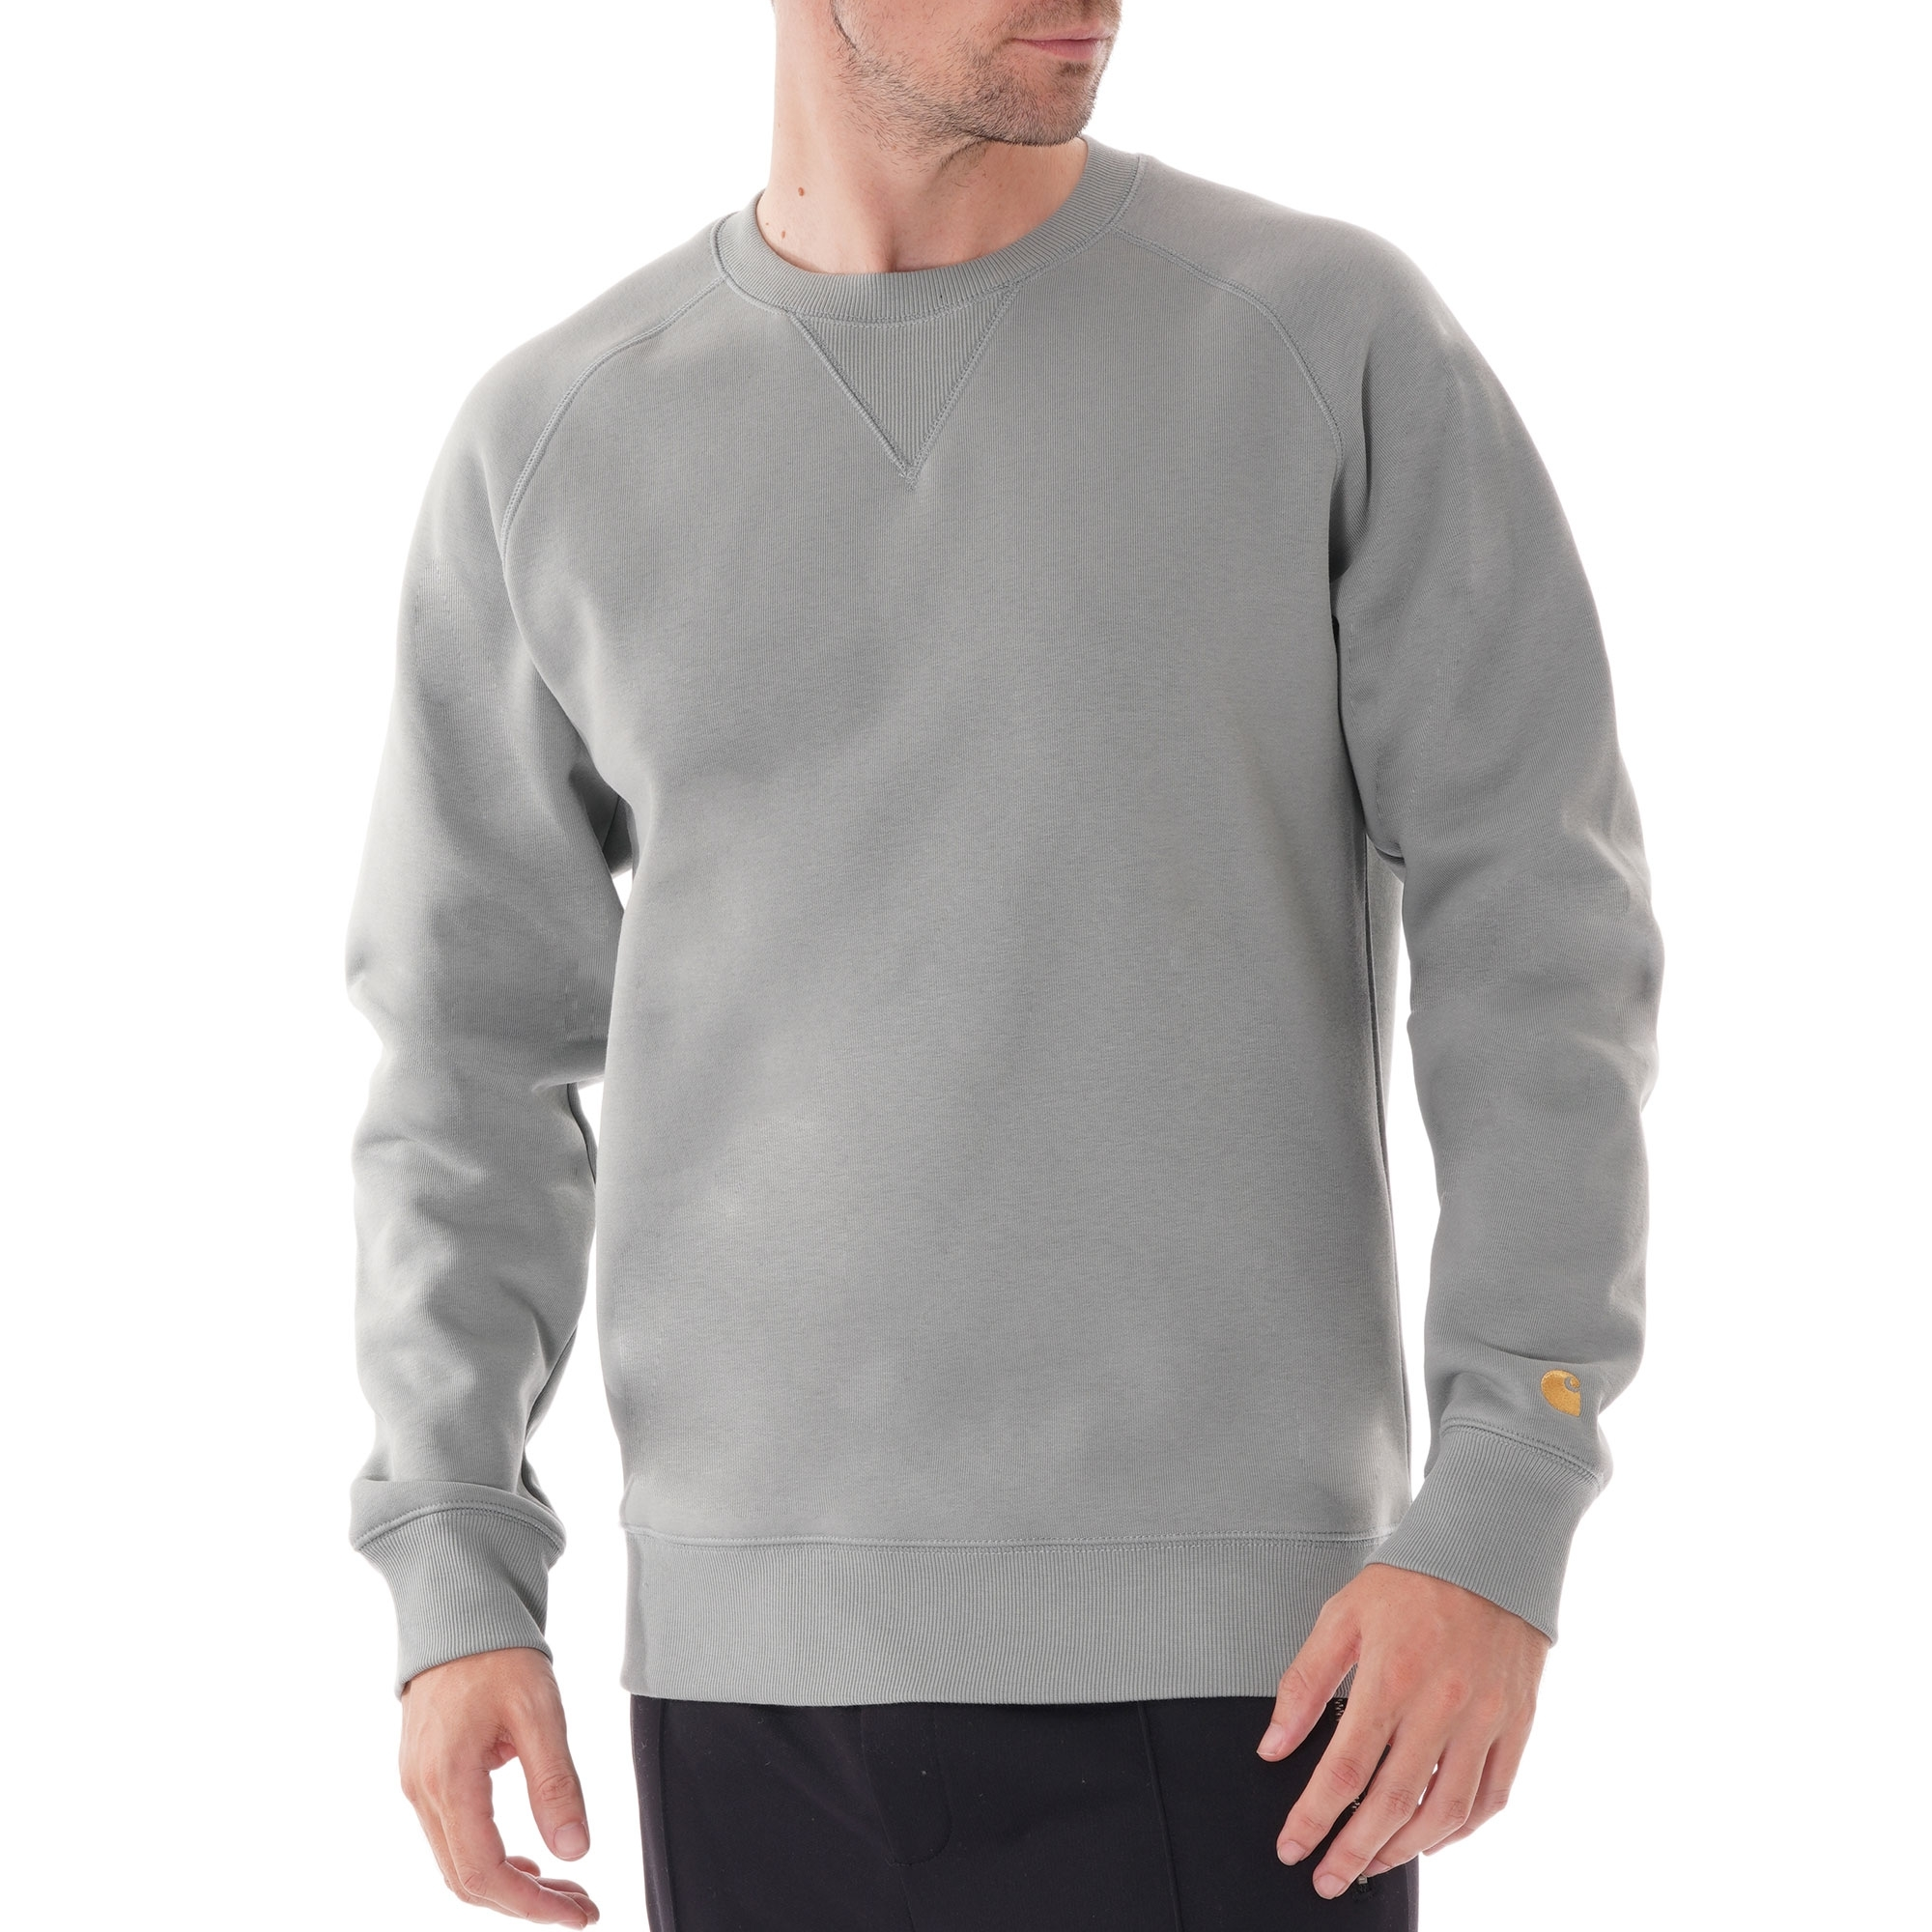 cheapest aliexpress reliable quality Chase Sweatshirt - Cloudy